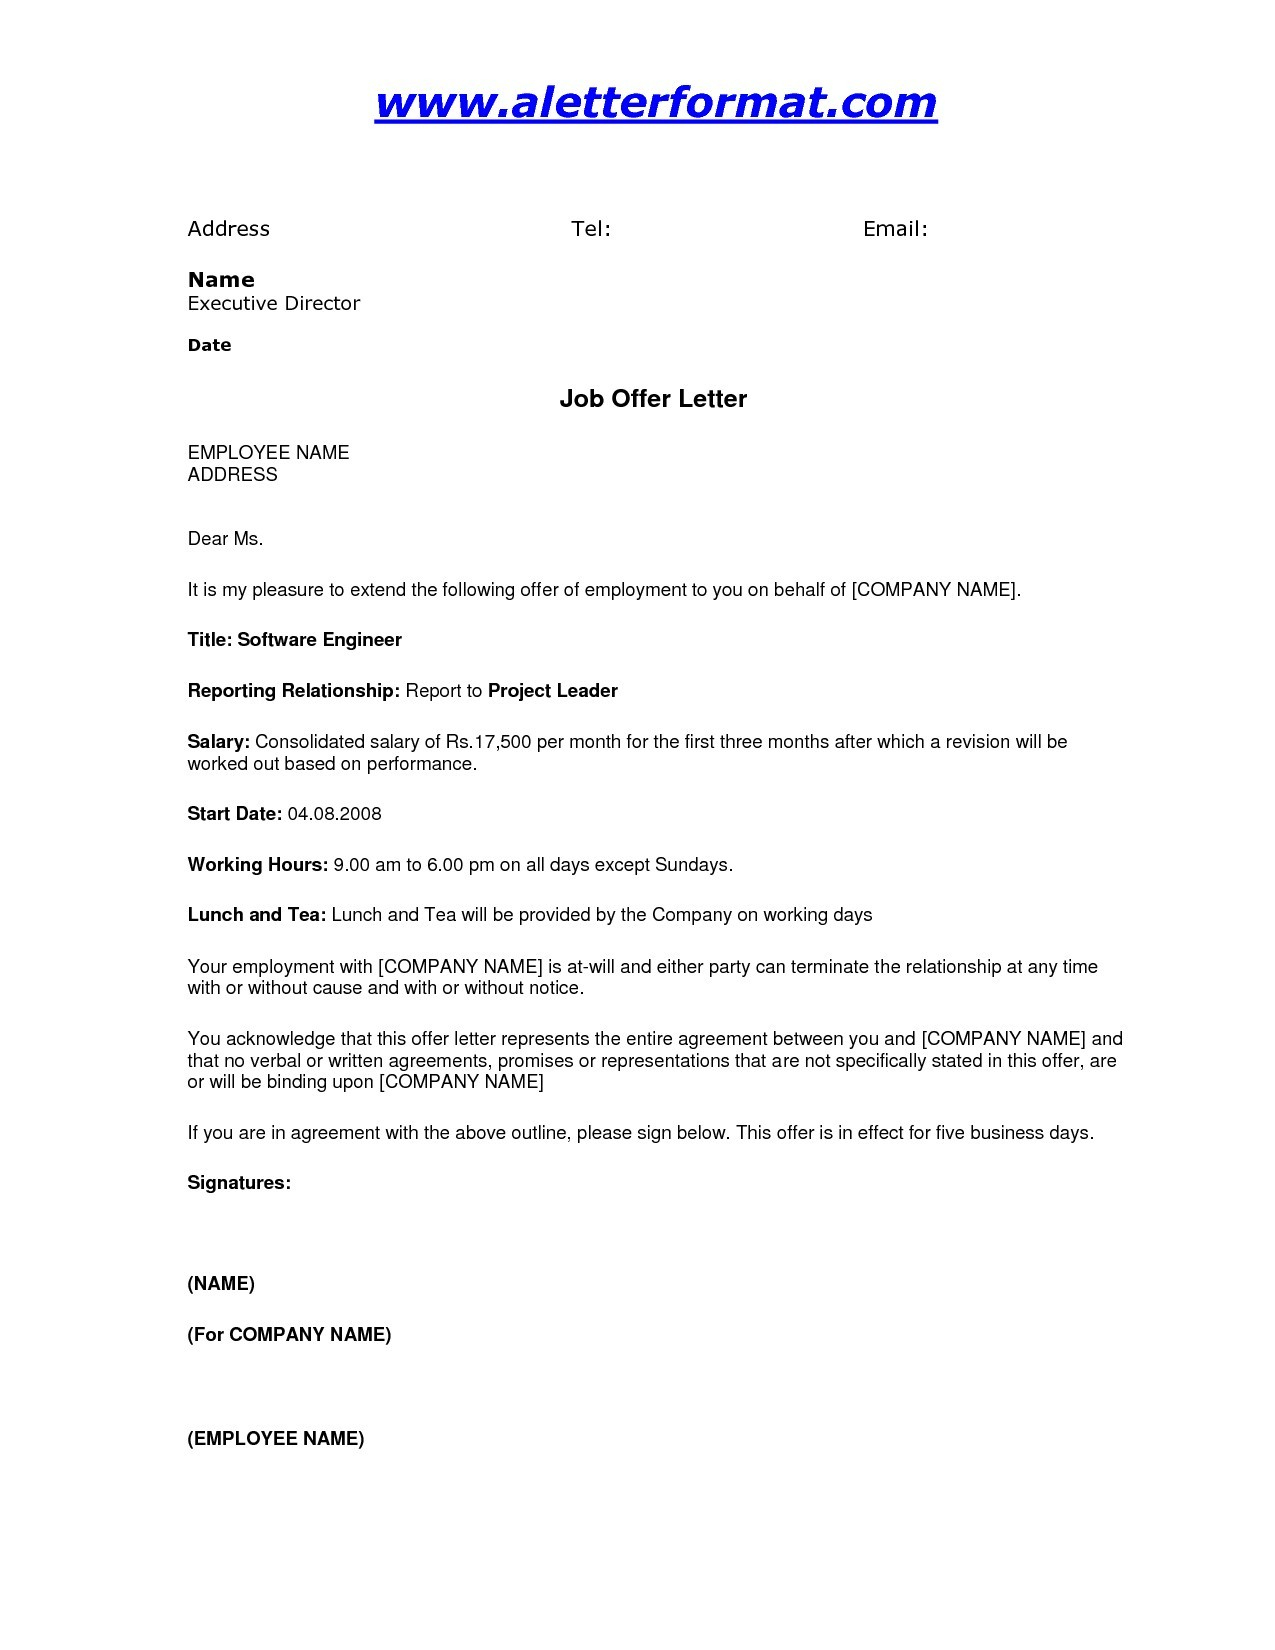 Job Offer Letter Template Doc - Fer Letter format Doc It Pany Best event Proposal Template